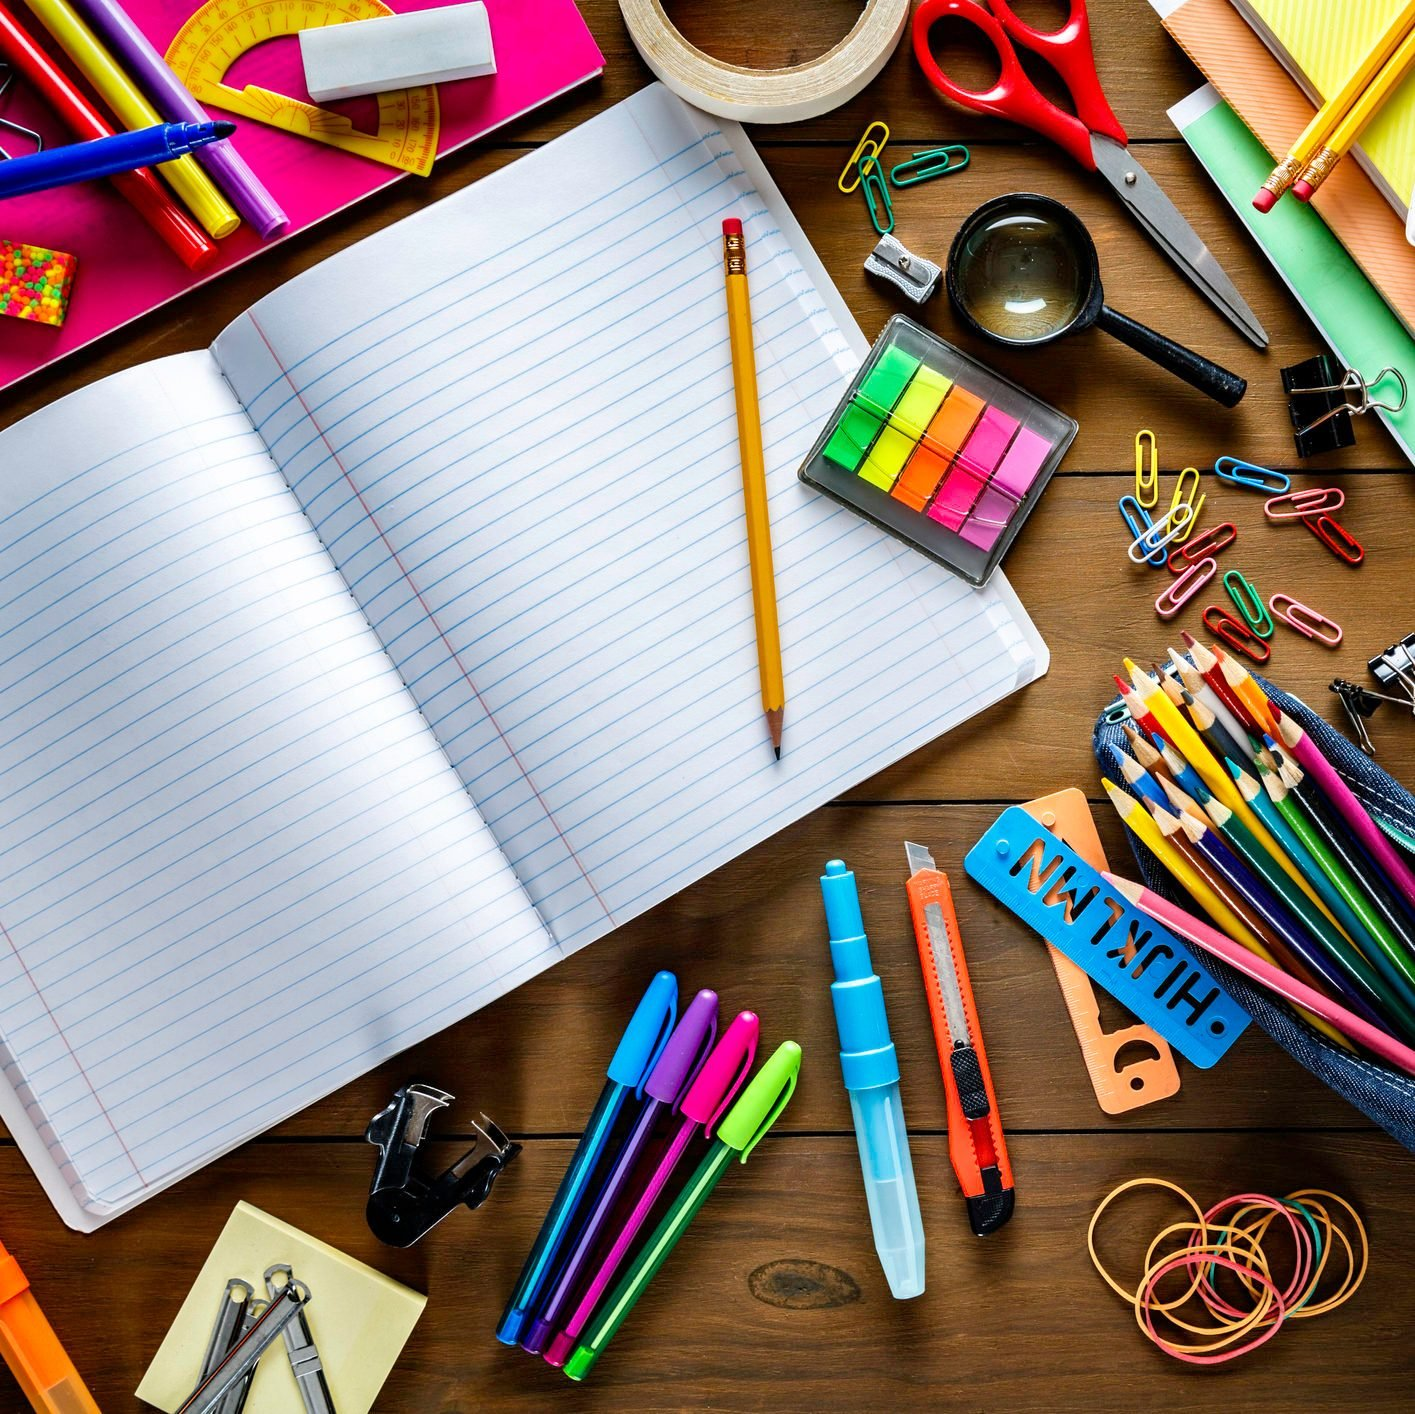 Overhead shot of stationery on wood desk with paper notepad and frame of school office supplies